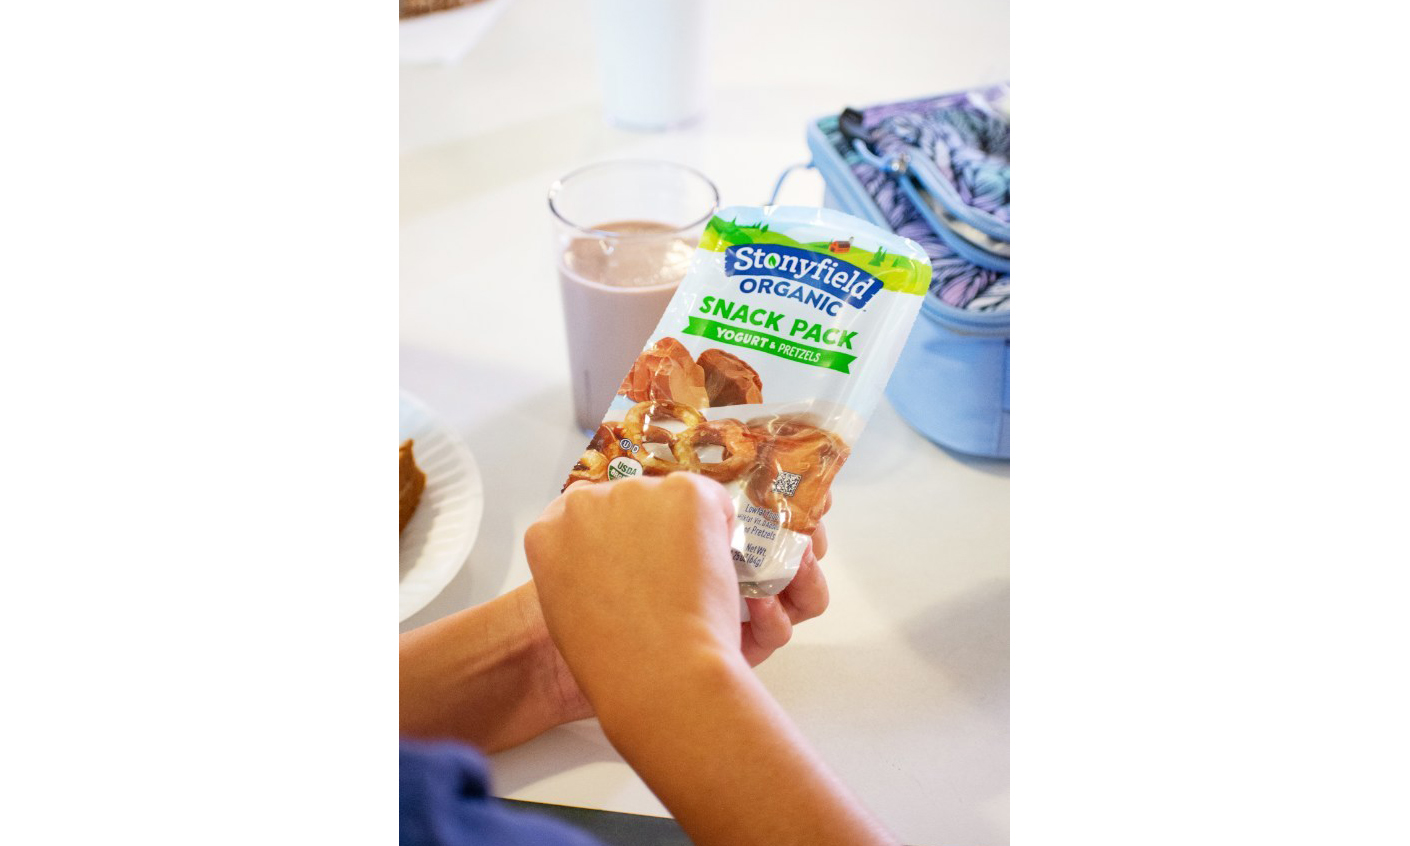 One of the Stonyfield Organic Snack Packs